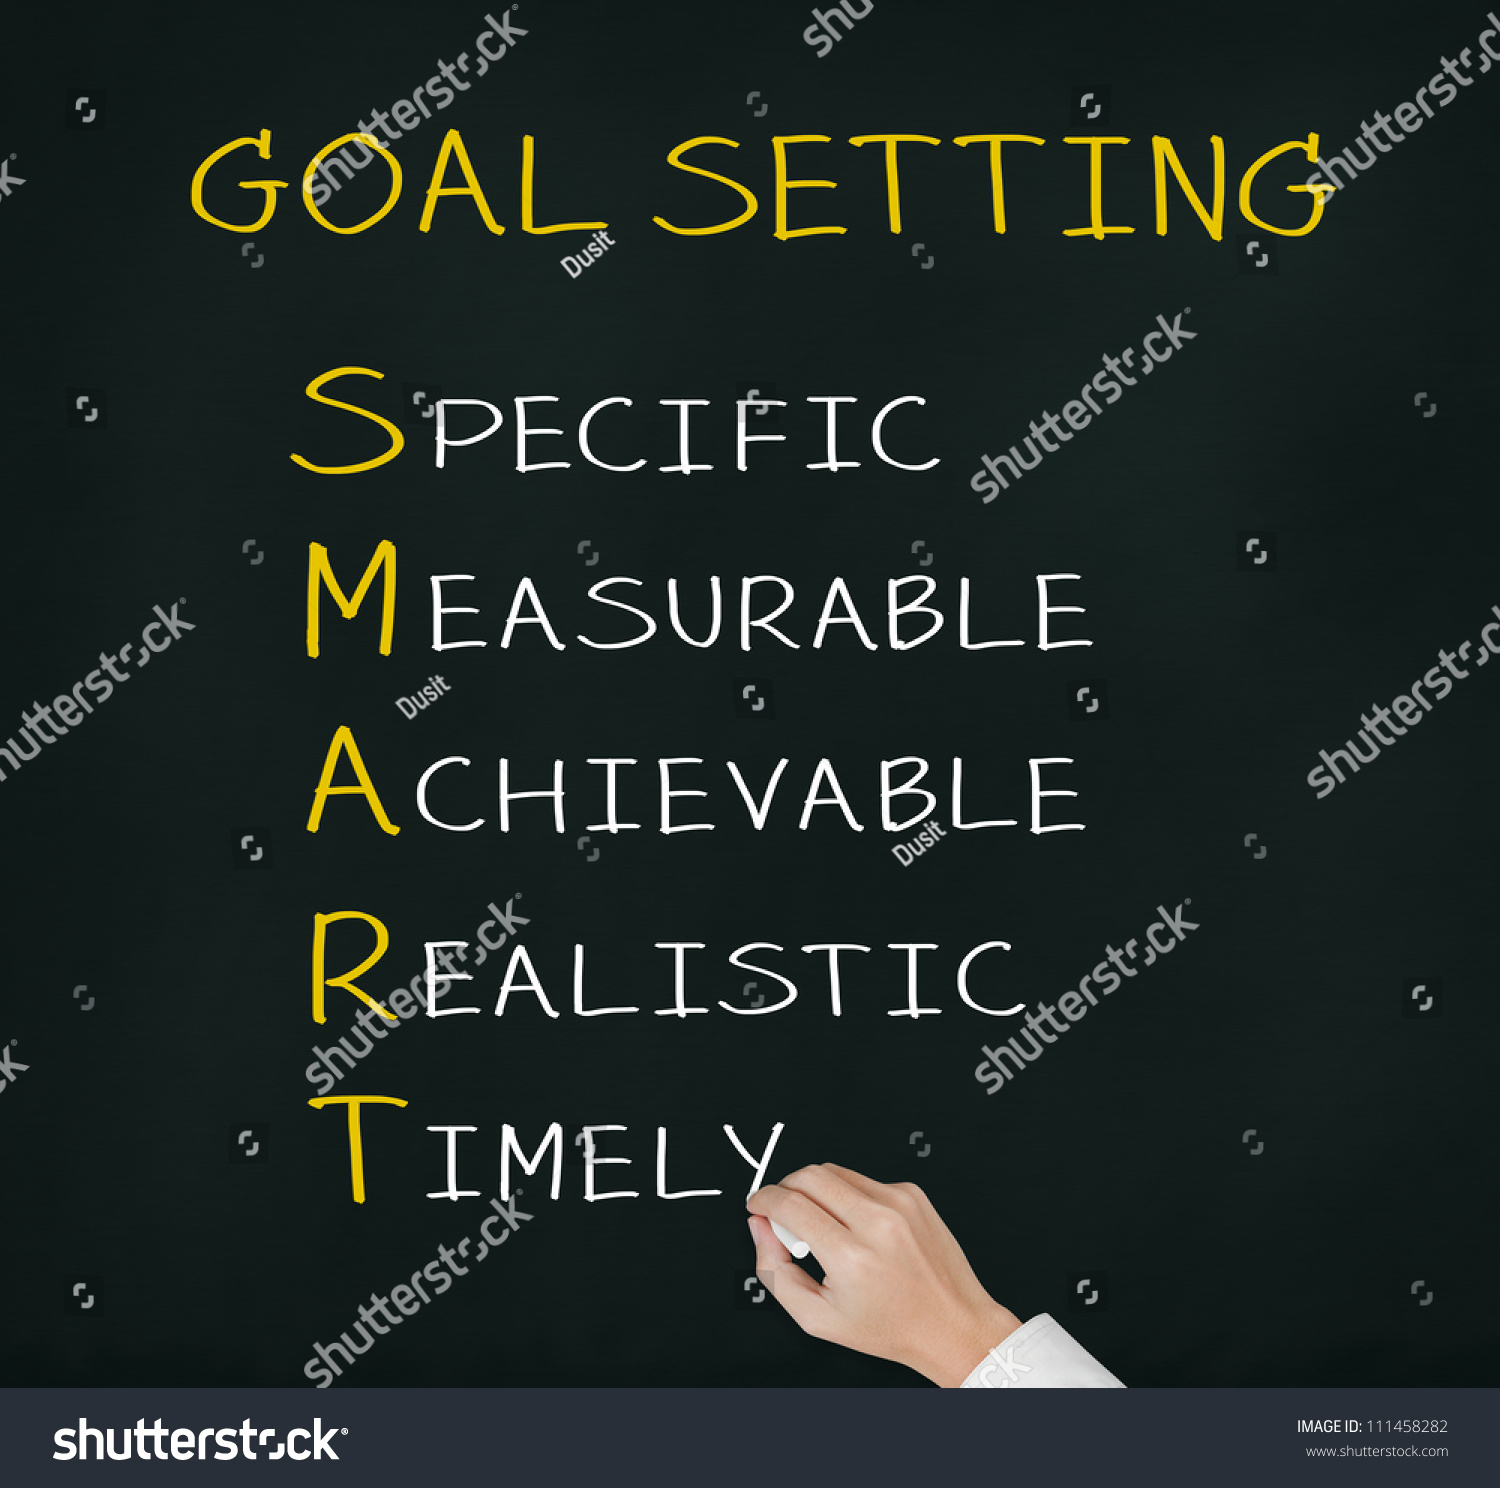 Business Hand Writing Smart Goal Or Objective Setting - Specific - Measurable - Achievable Realistic - Timely Stock Photo 111458282 : Shutterstock